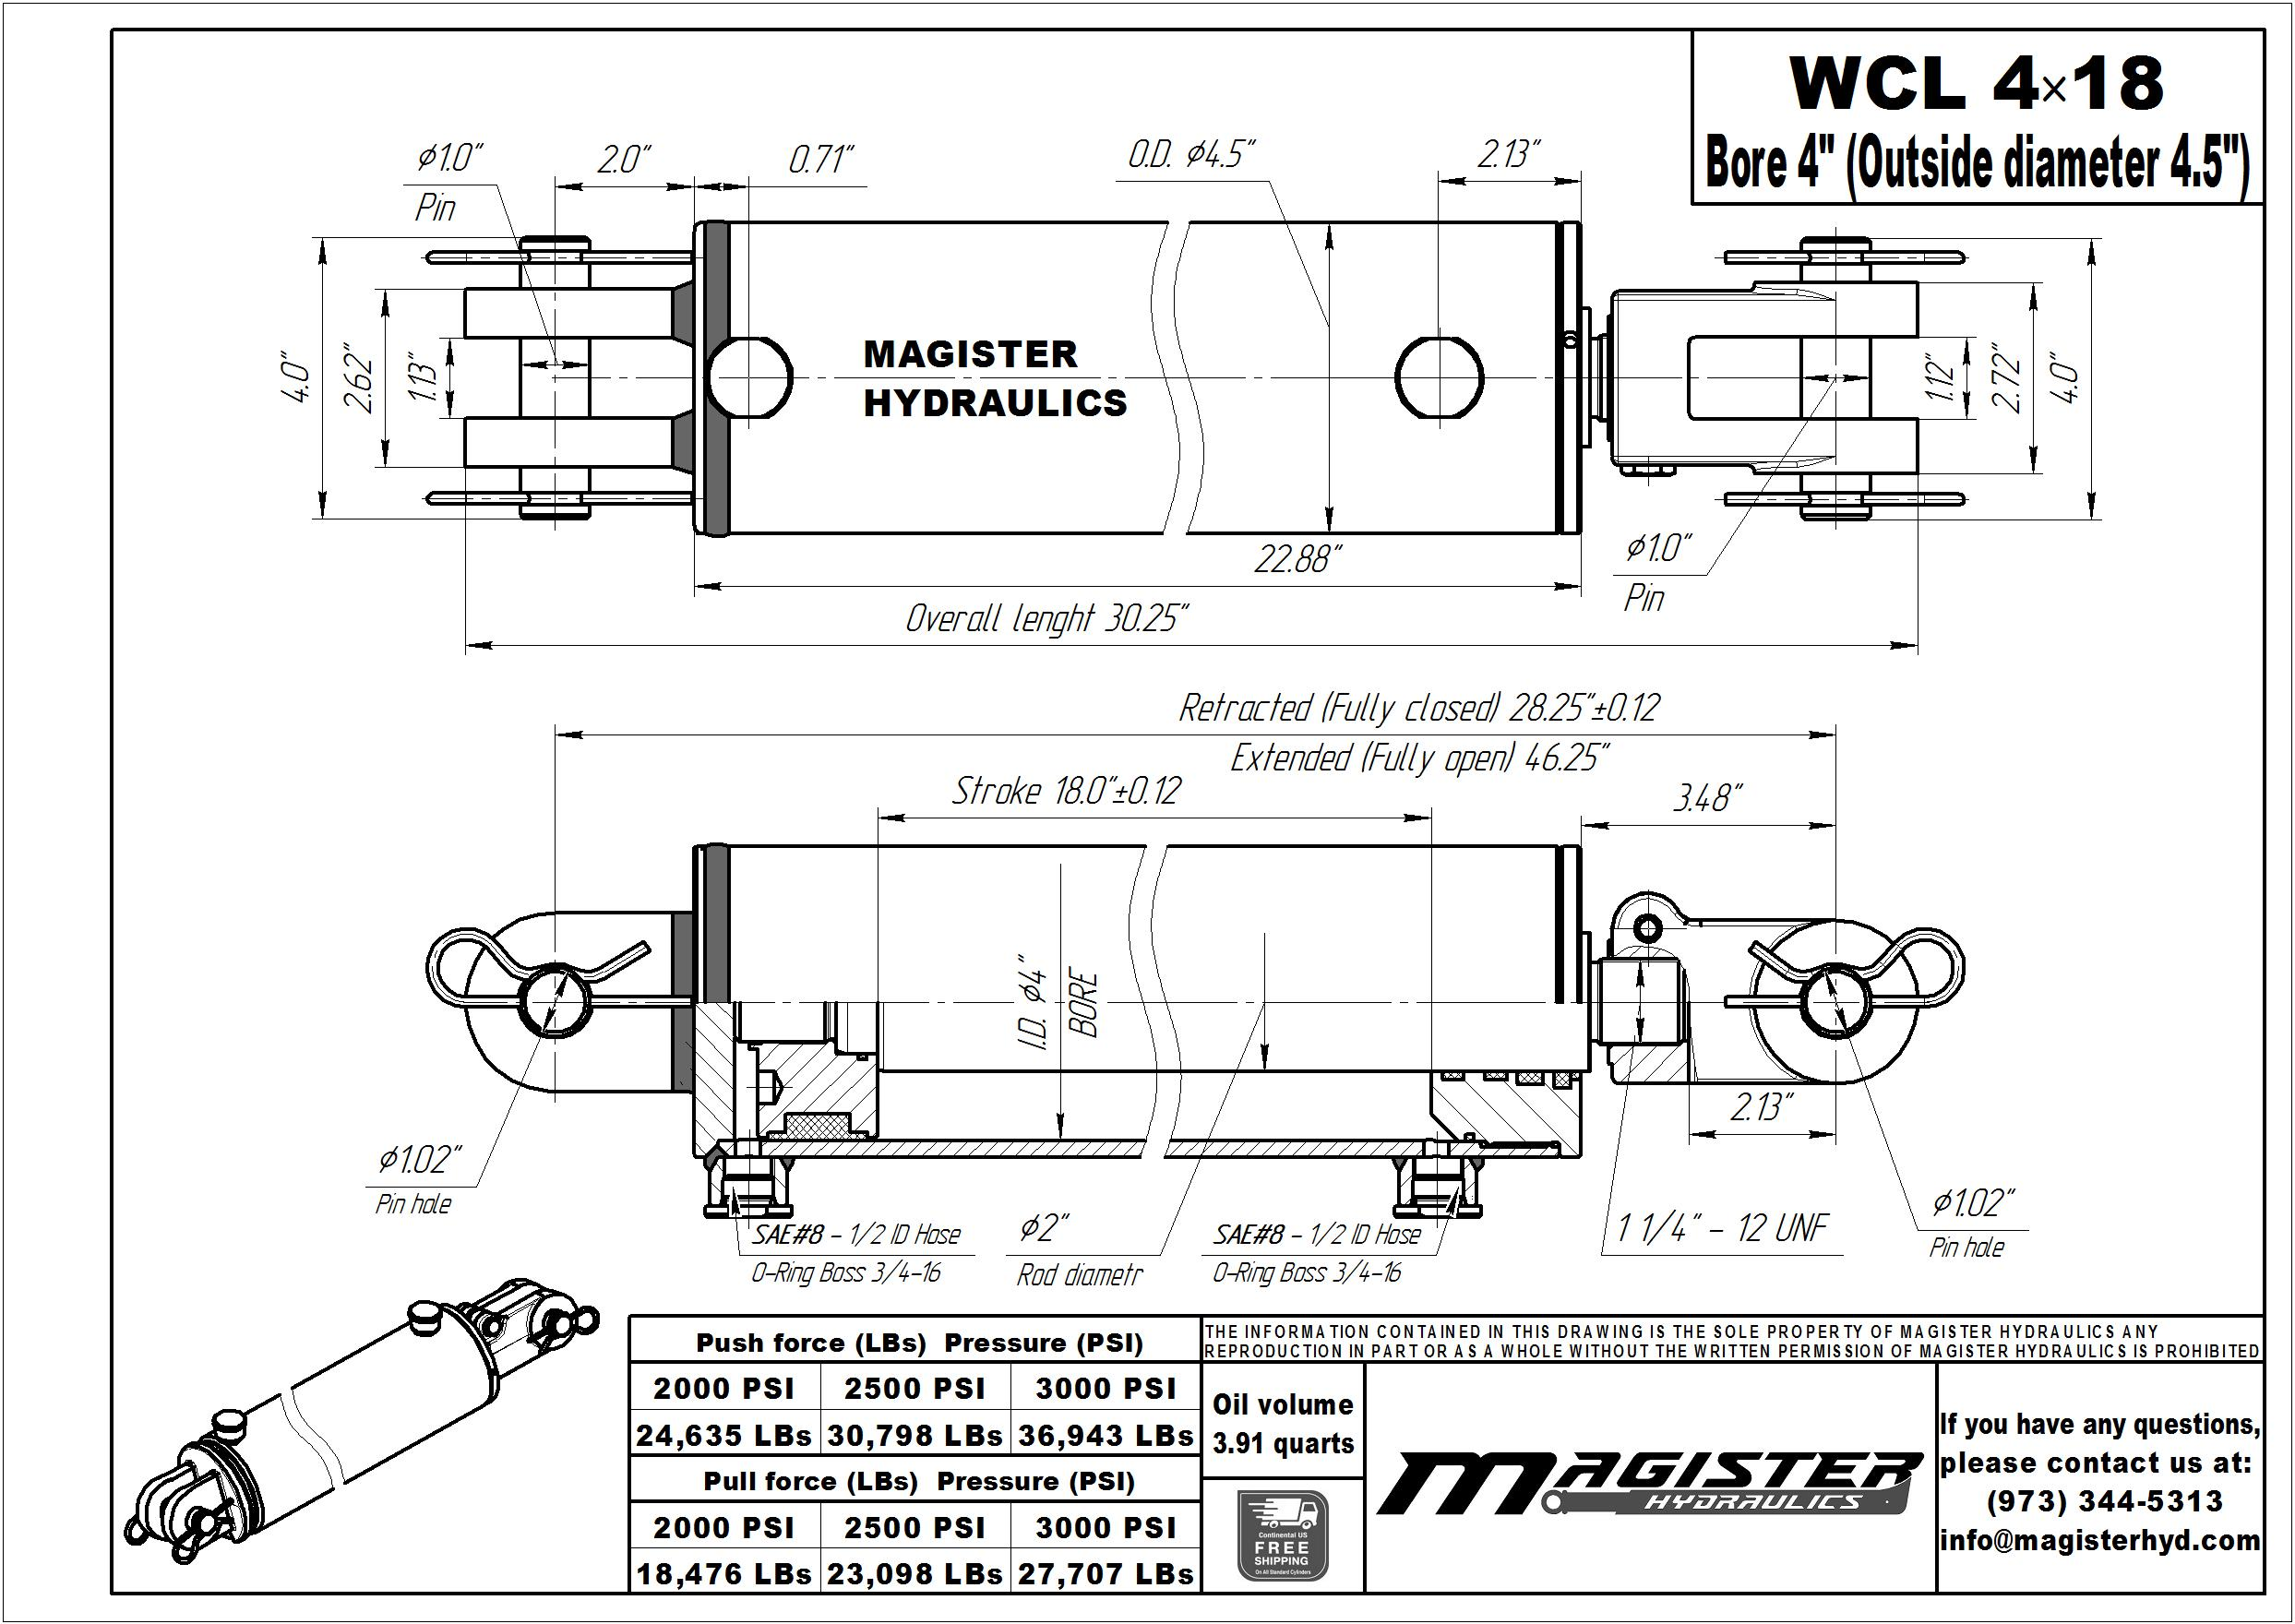 4 bore x 18 stroke hydraulic cylinder, welded clevis double acting cylinder | Magister Hydraulics